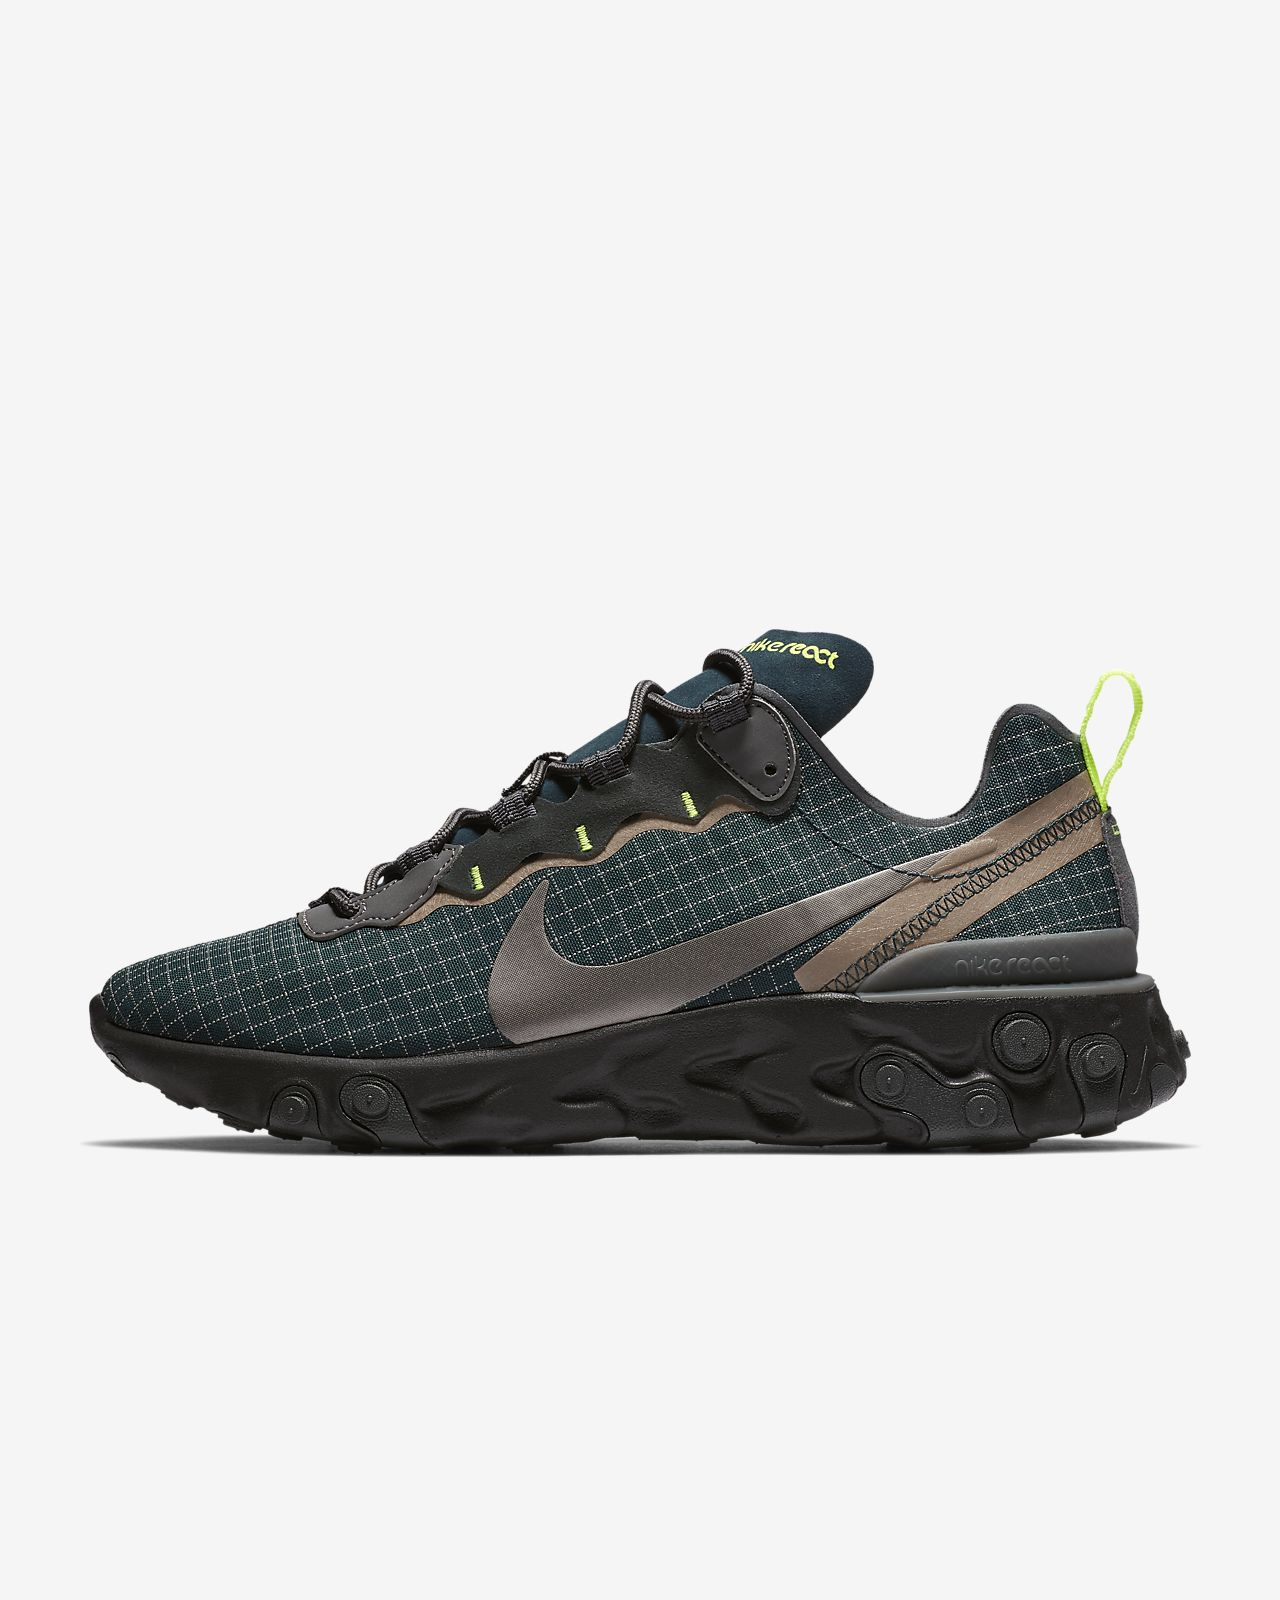 f53c0ab5f60 Nike React Element 55 Men s Shoe. Nike.com GB